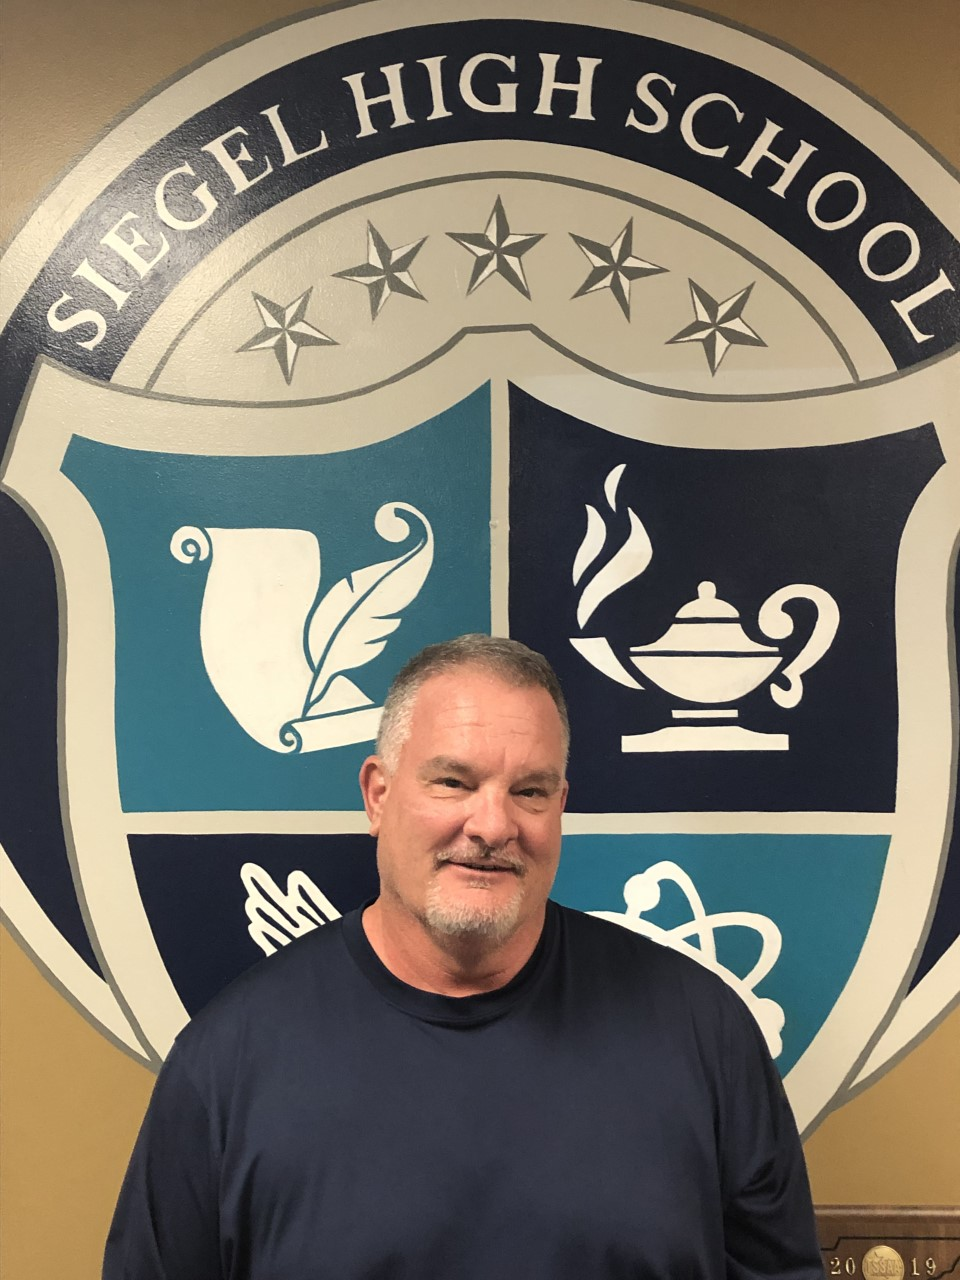 The National Interscholastic Athletic Administrators Association (NIAAA) has announced that Greg Wyant, Athletic Director at Siegel High School, has been recognized by the association as a Certified Athletic Administrator.